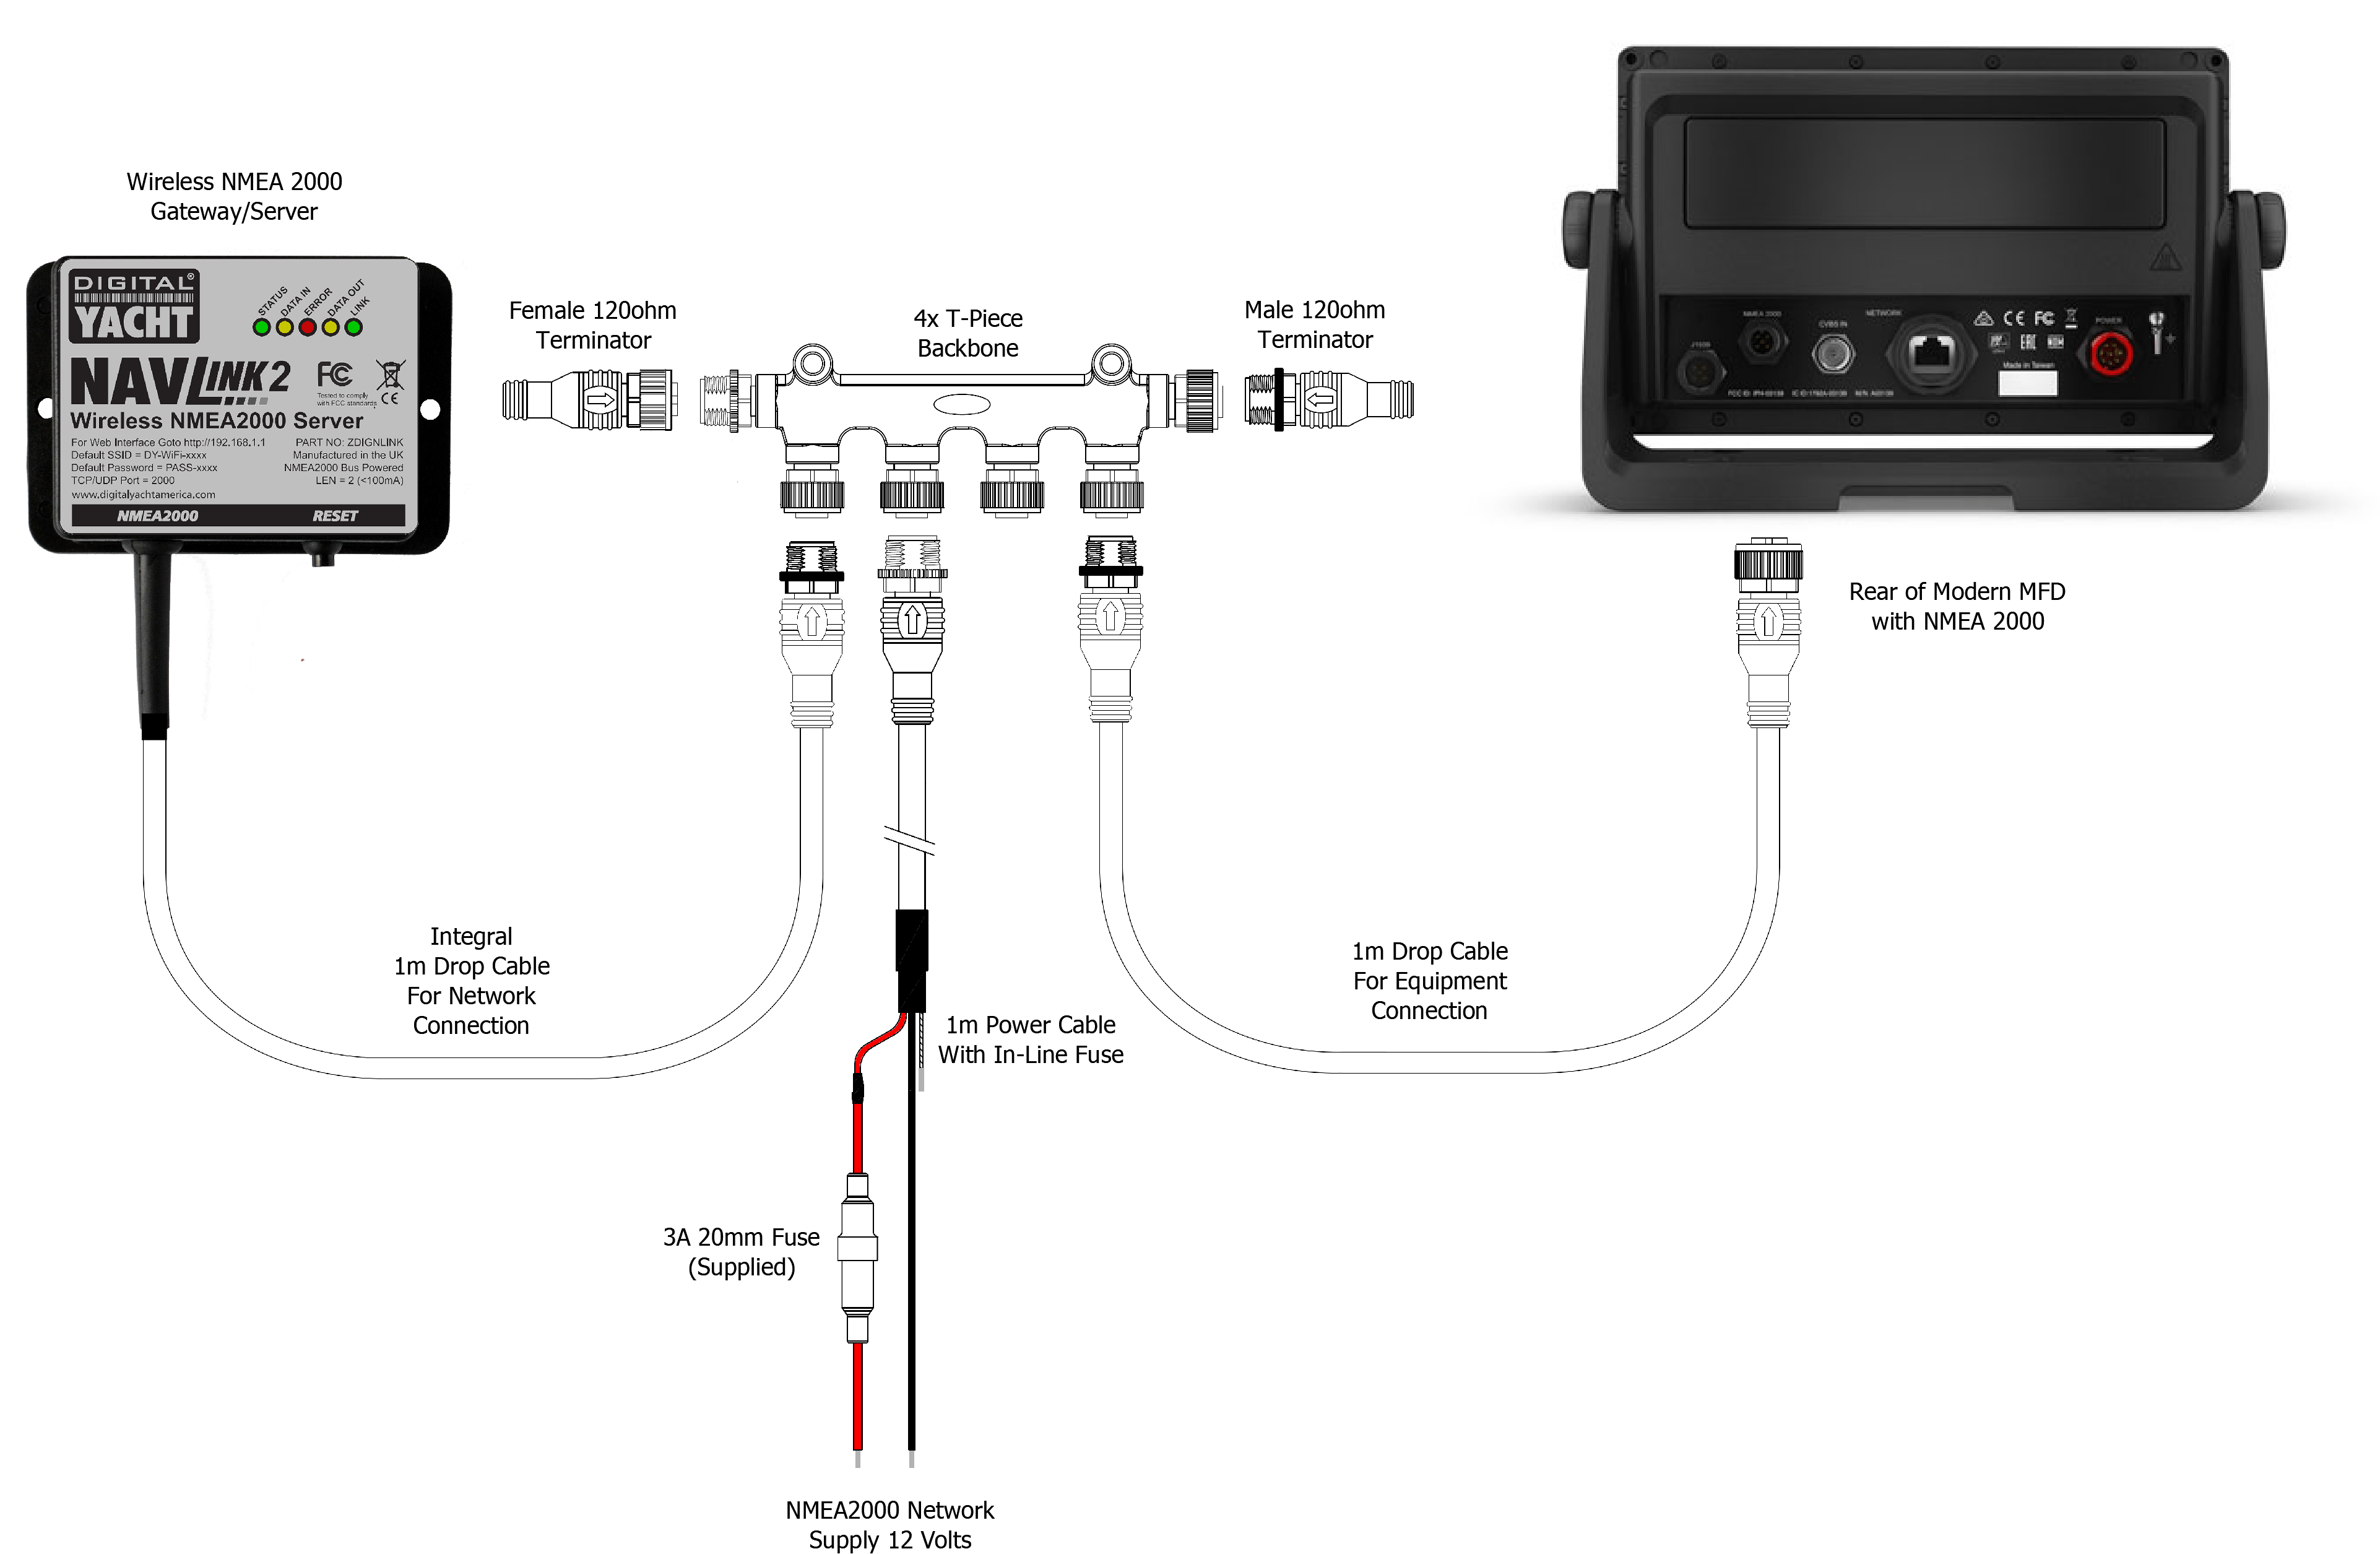 Connecting NavLink2 to a NMEA 2000 Starter Kit from